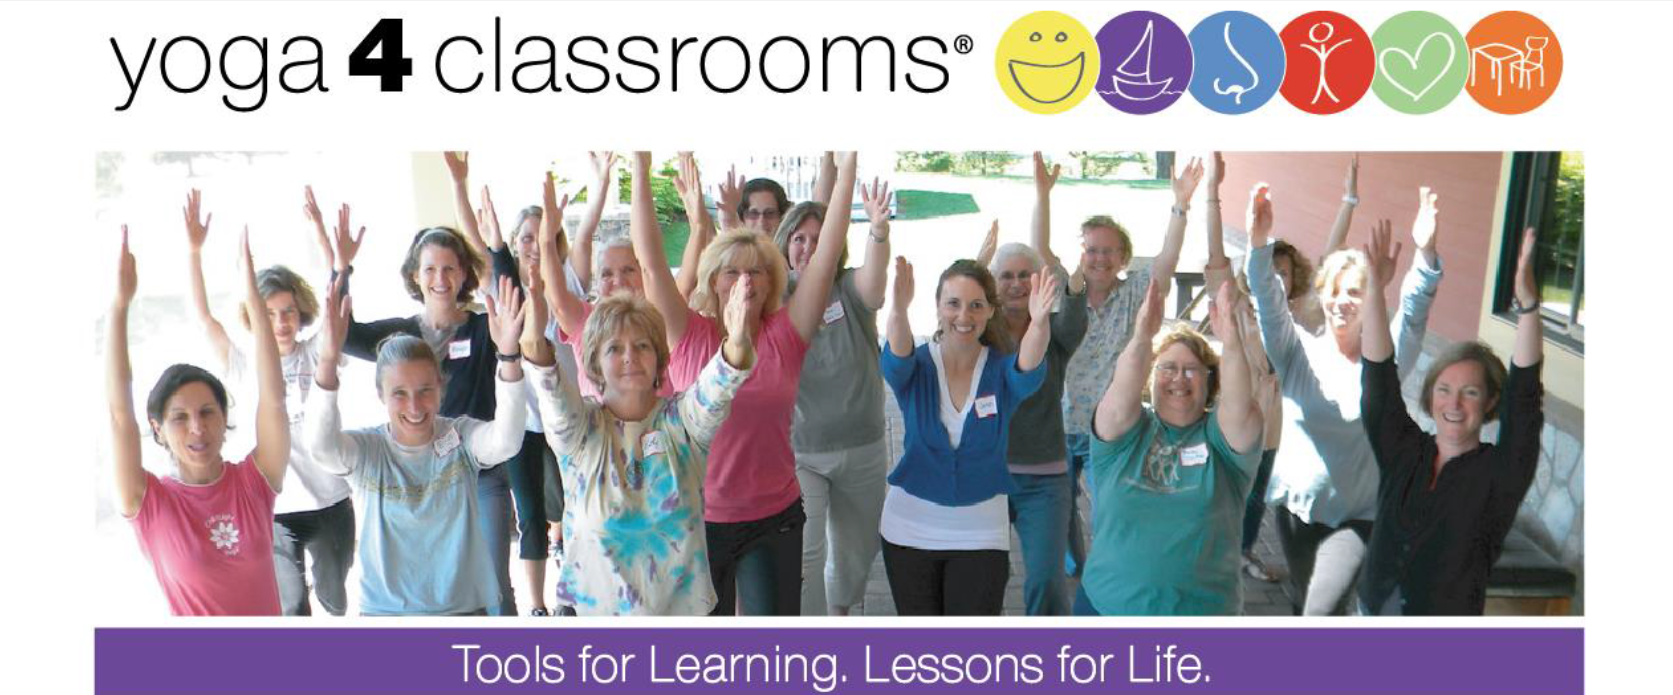 Yoga 4 Classrooms Graphic Of Teachers Doing Yoga Poses. Photo Courtesy Of Yoga 4 Classrooms